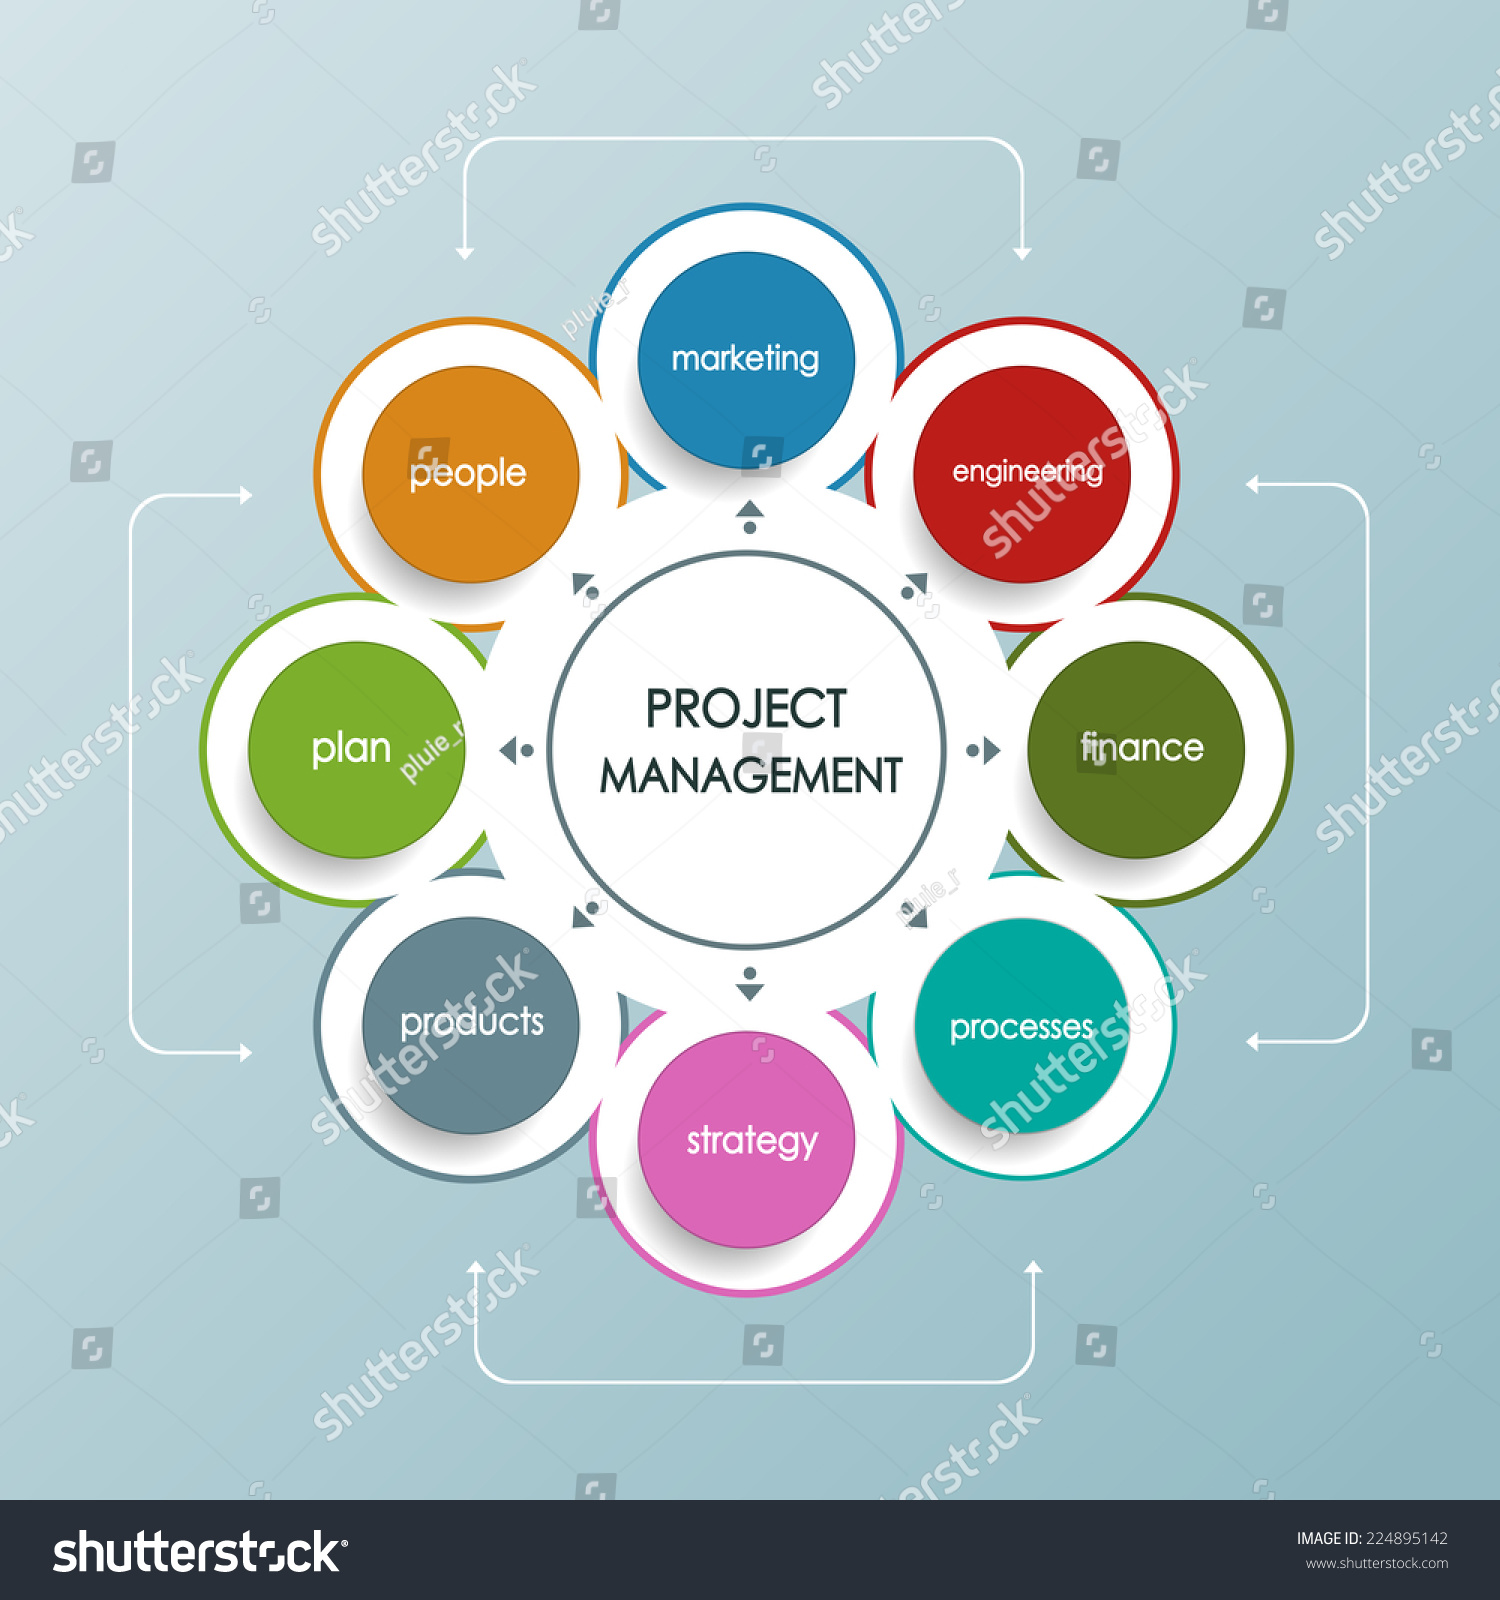 project management business plan circle shape operations financial